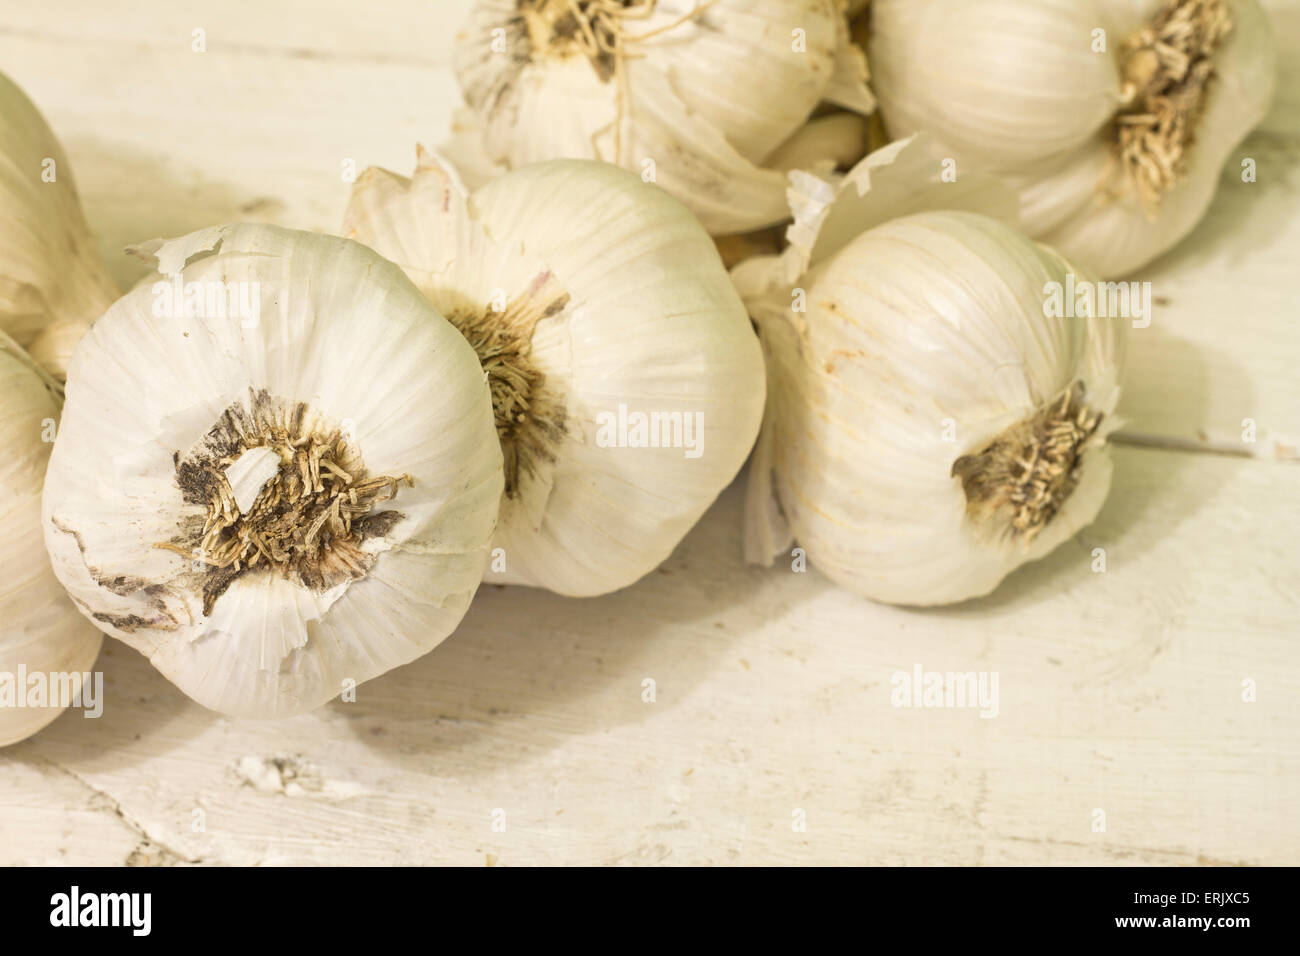 Group of garlic on wooden table - Stock Image